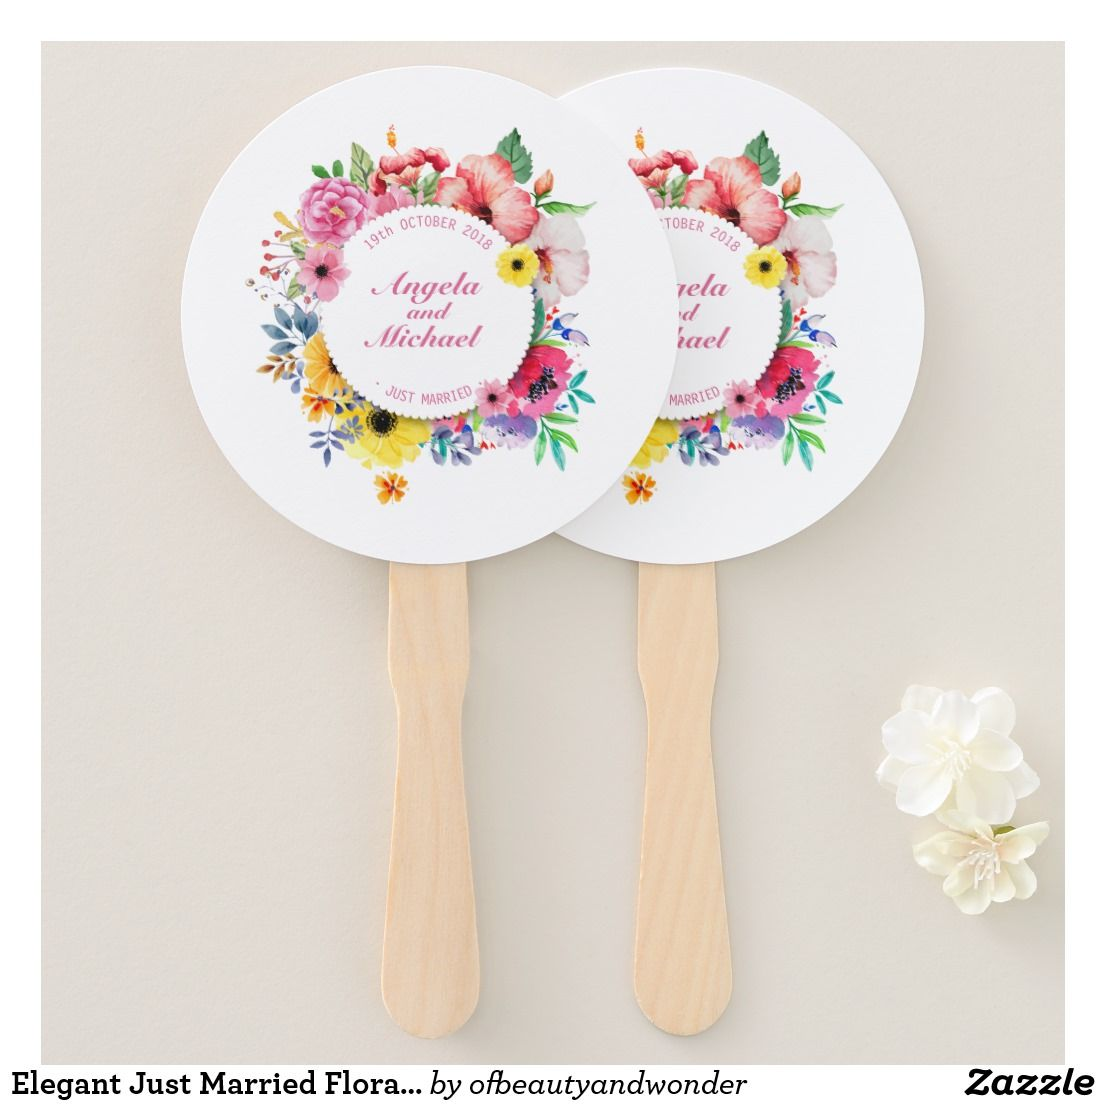 Wedding decorations trees with lights october 2018 Elegant Just Married Floral Wedding  Hand Fan  Top Personalized Mr